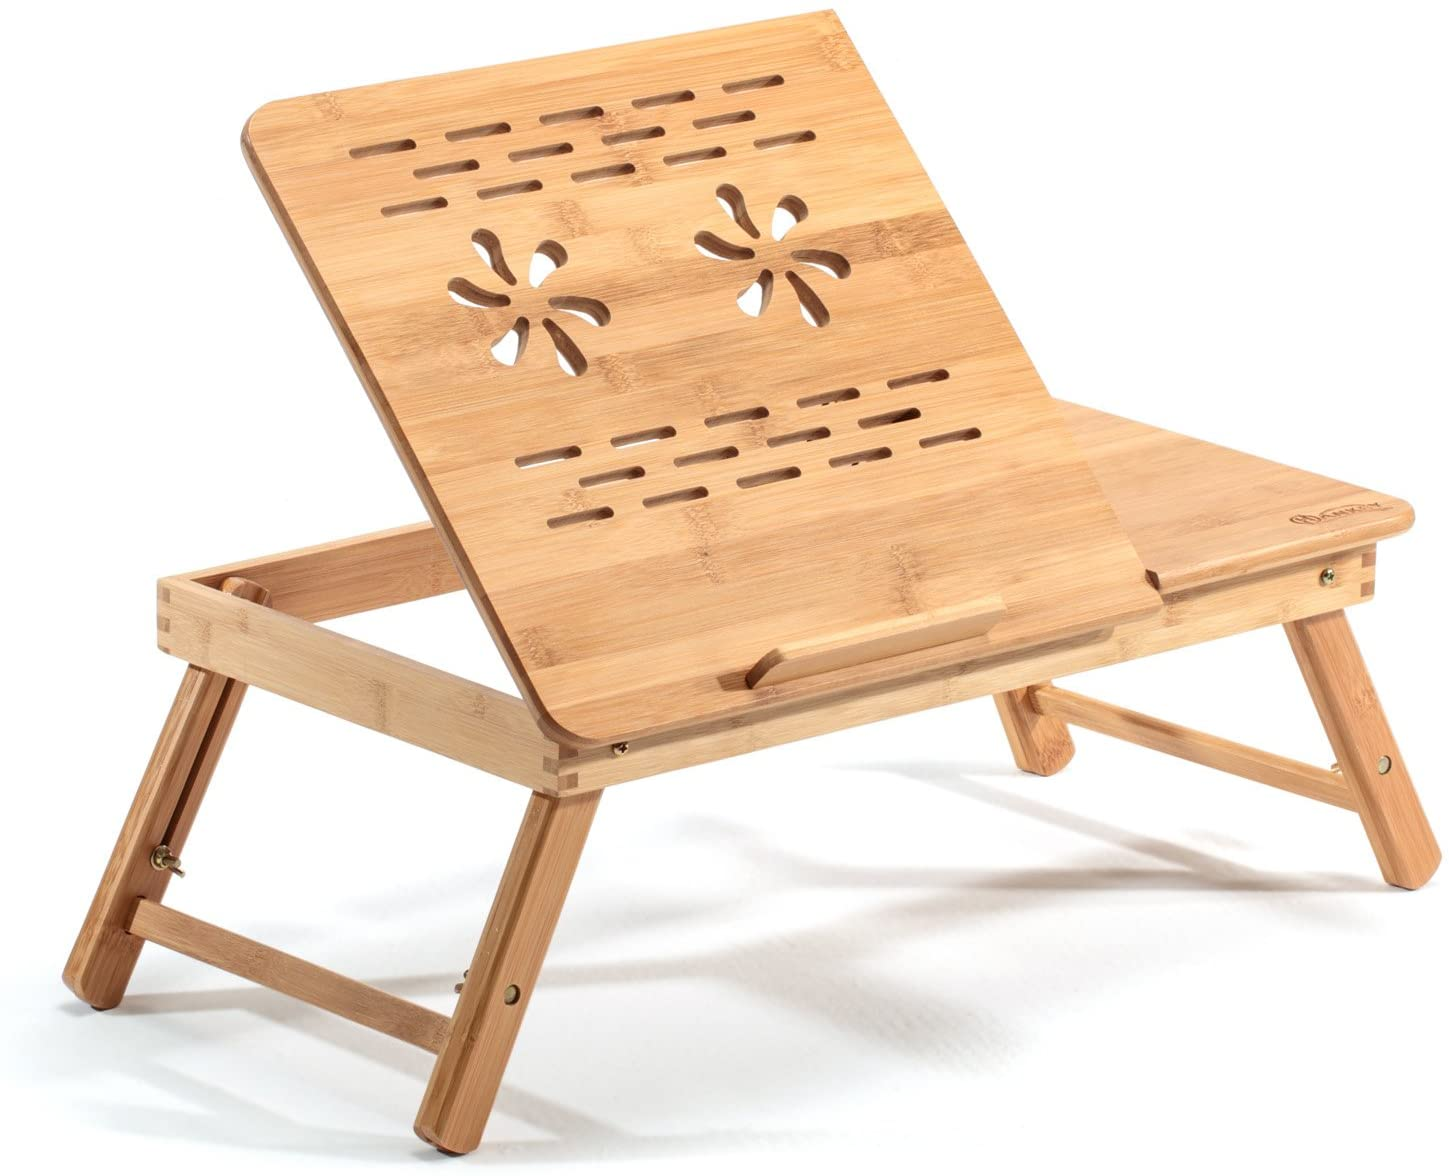 Top 15 Laptop Bed Table Desks (Lapdesks) of [year] 8